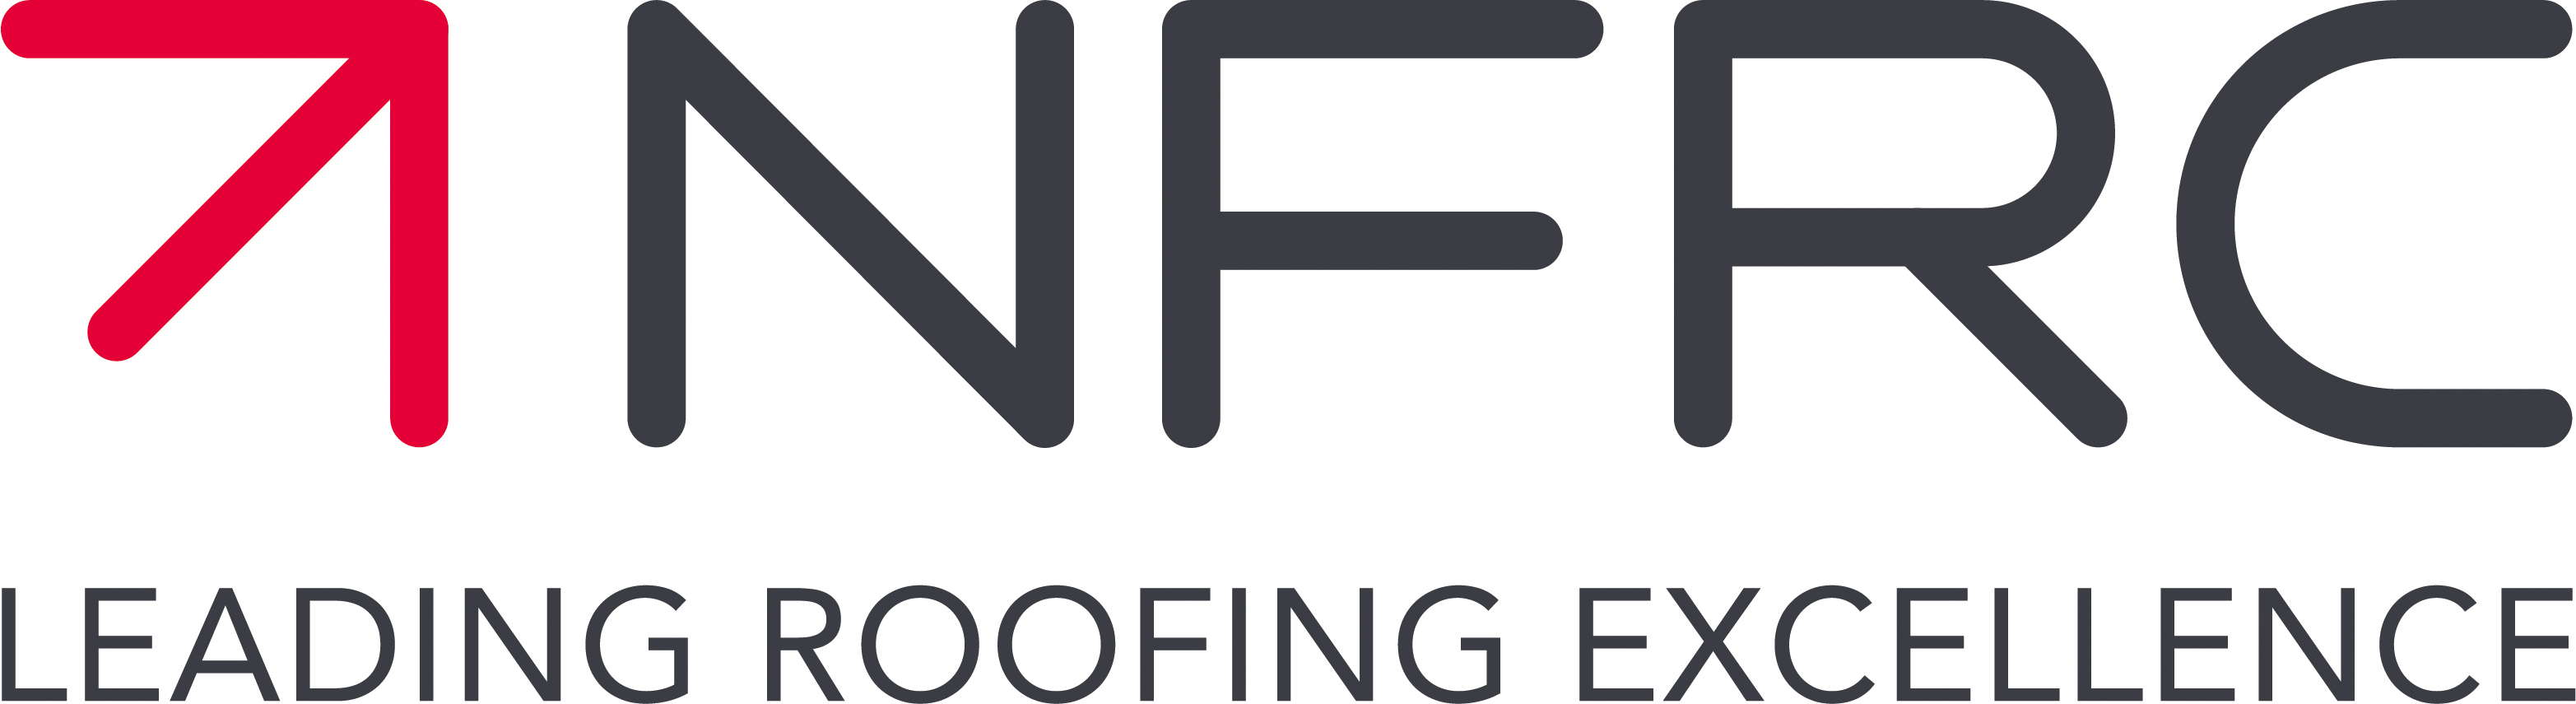 National Federation of Roofing Contractors NFRC